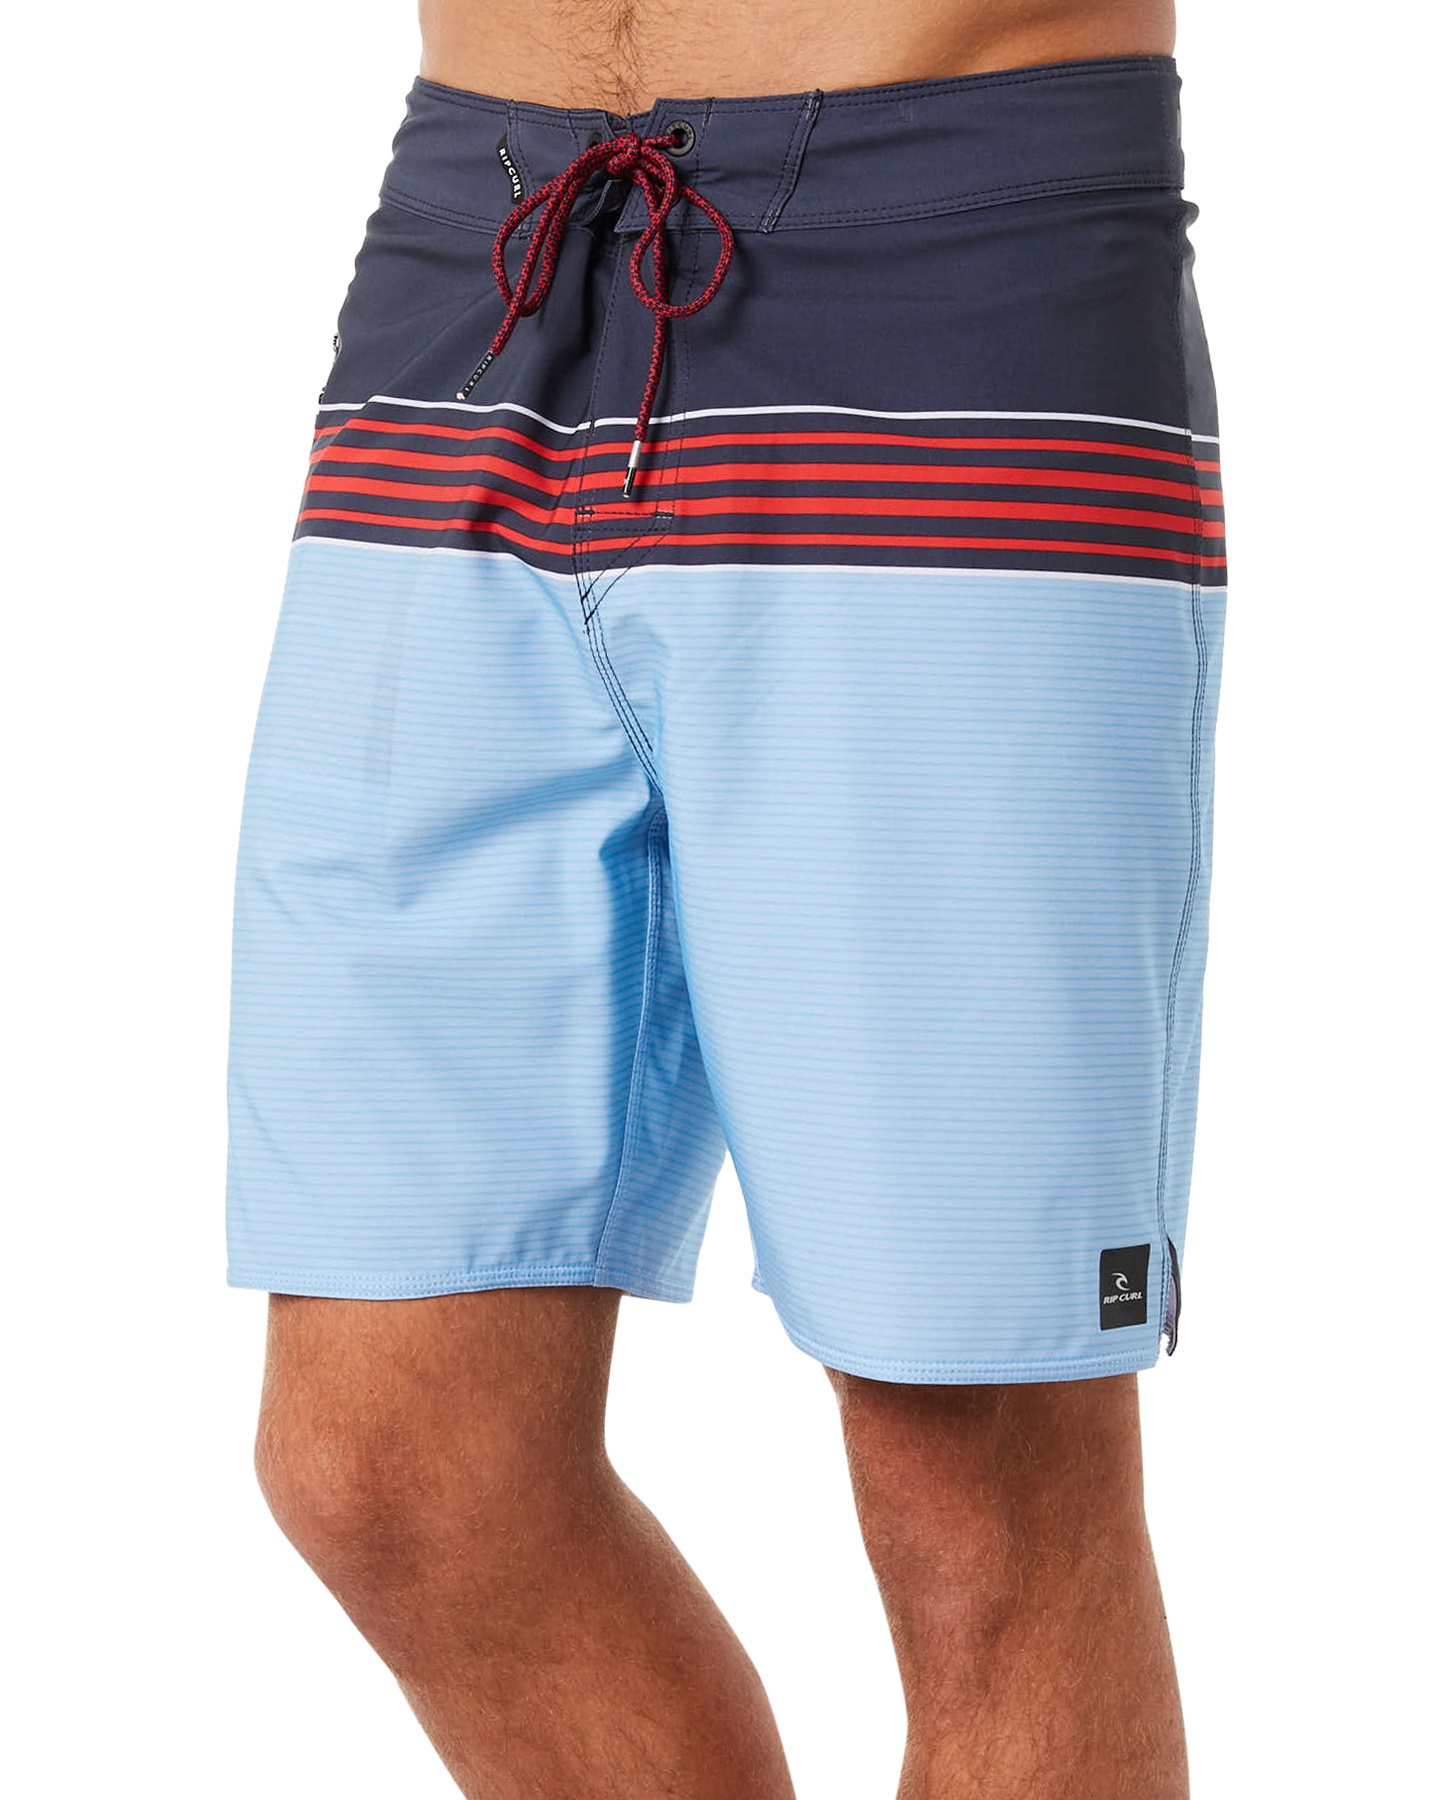 c910ec2db4 New Rip Curl Men's Mirage Max Edge 20 Mens Boardshort Stretch Blue ...